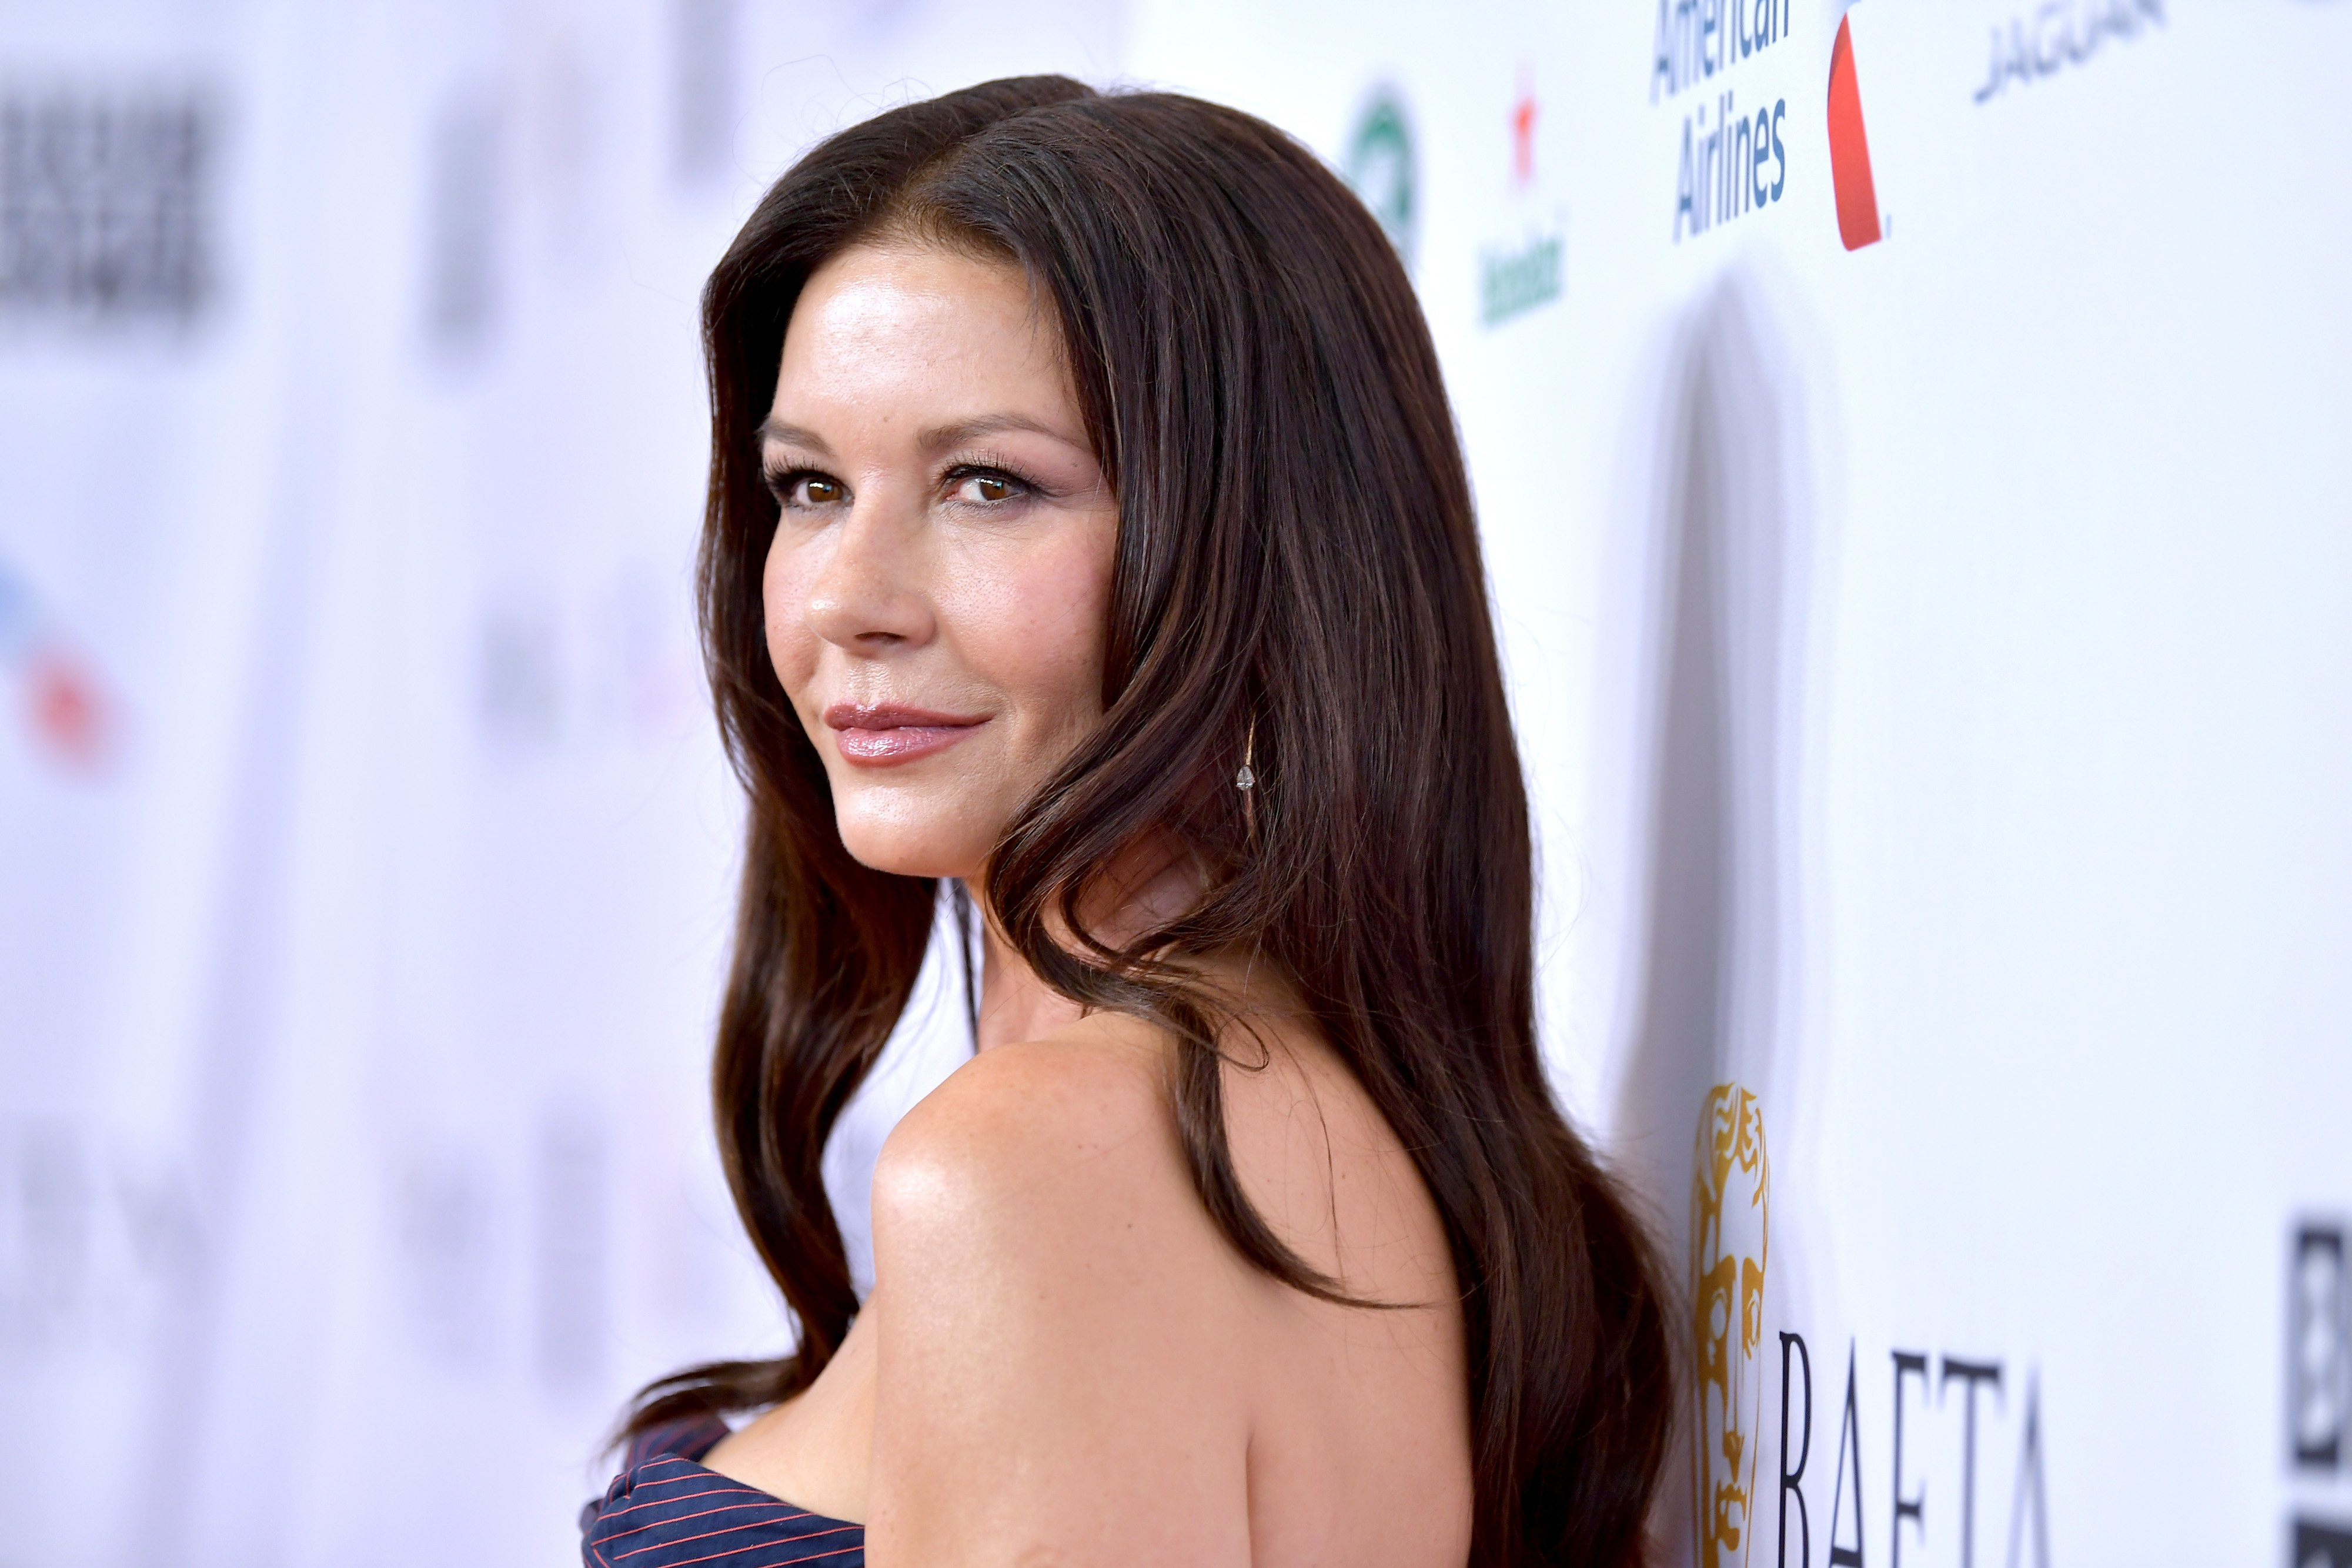 Image Credits: Getty Images / Amy Sussman | Catherine Zeta-Jones attends the BAFTA Los Angeles + BBC America TV Tea Party 2019 at The Beverly Hilton Hotel on September 21, 2019 in Beverly Hills, California.